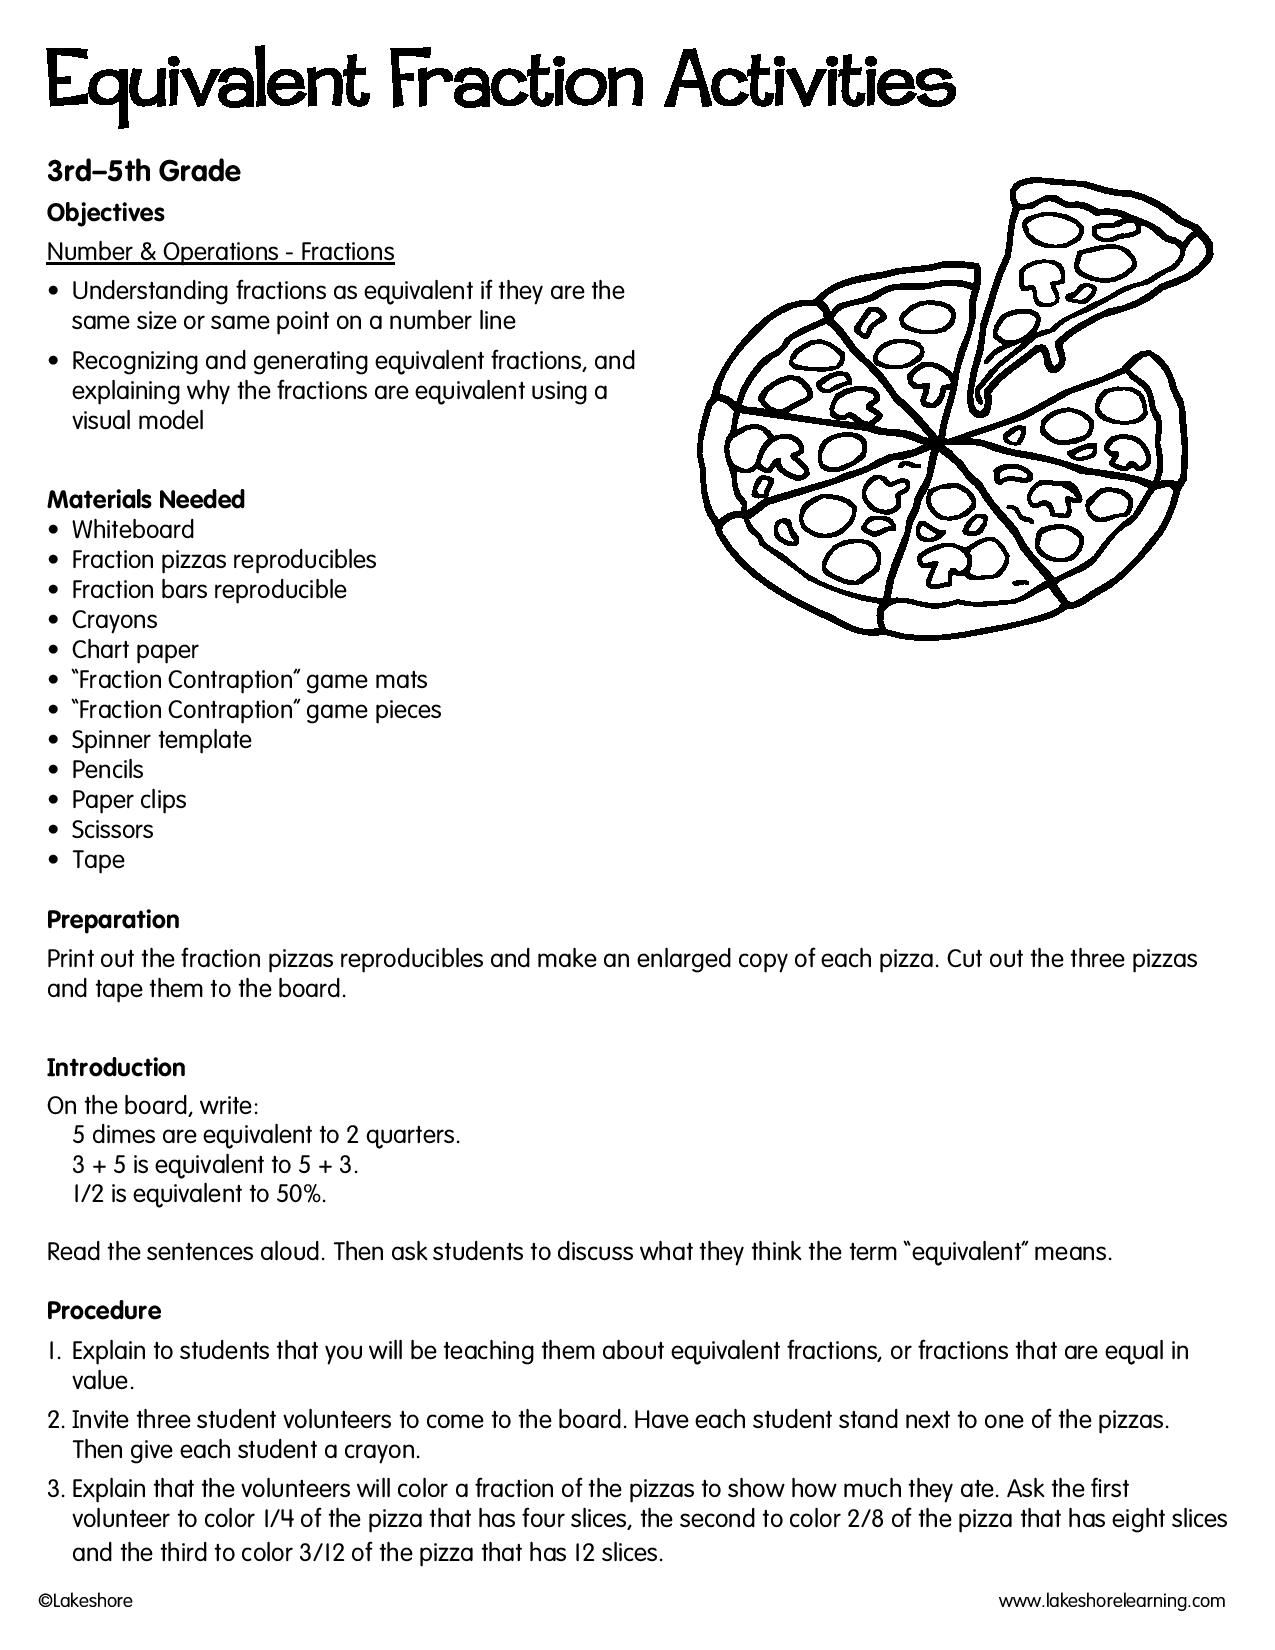 Equivalent Fraction Activities Lessonplan Math